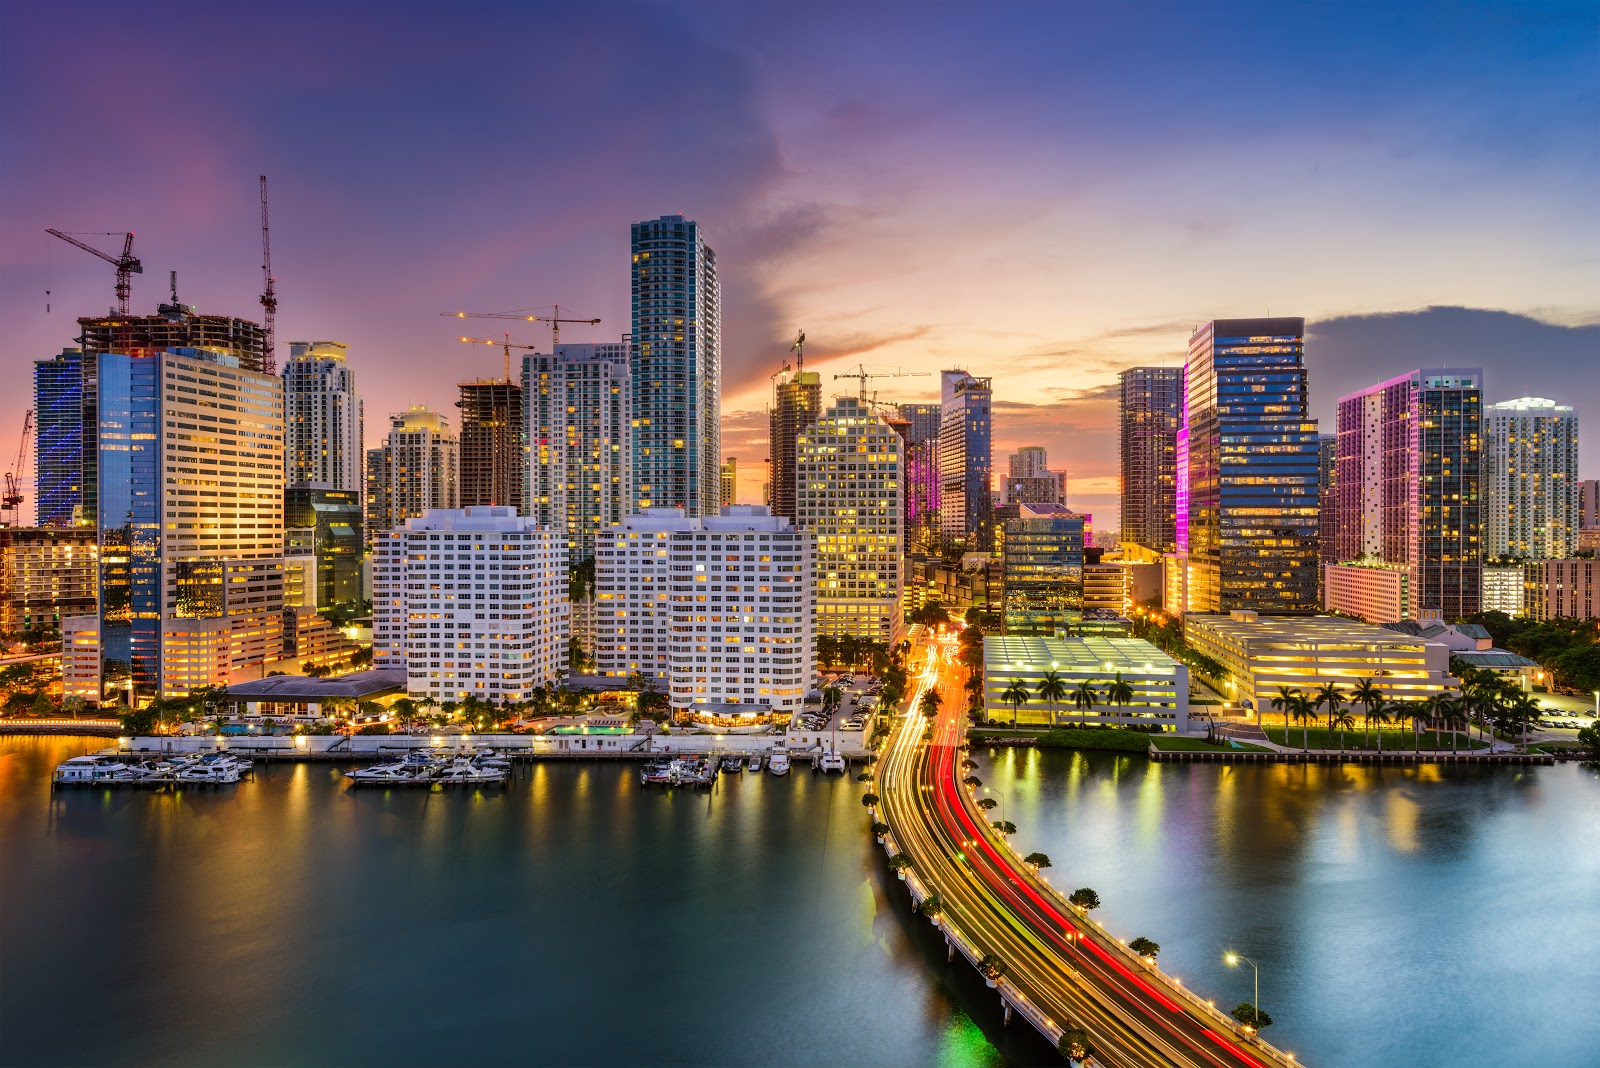 Skyline of Miami at night. It displays many high rise buildings and traffic.